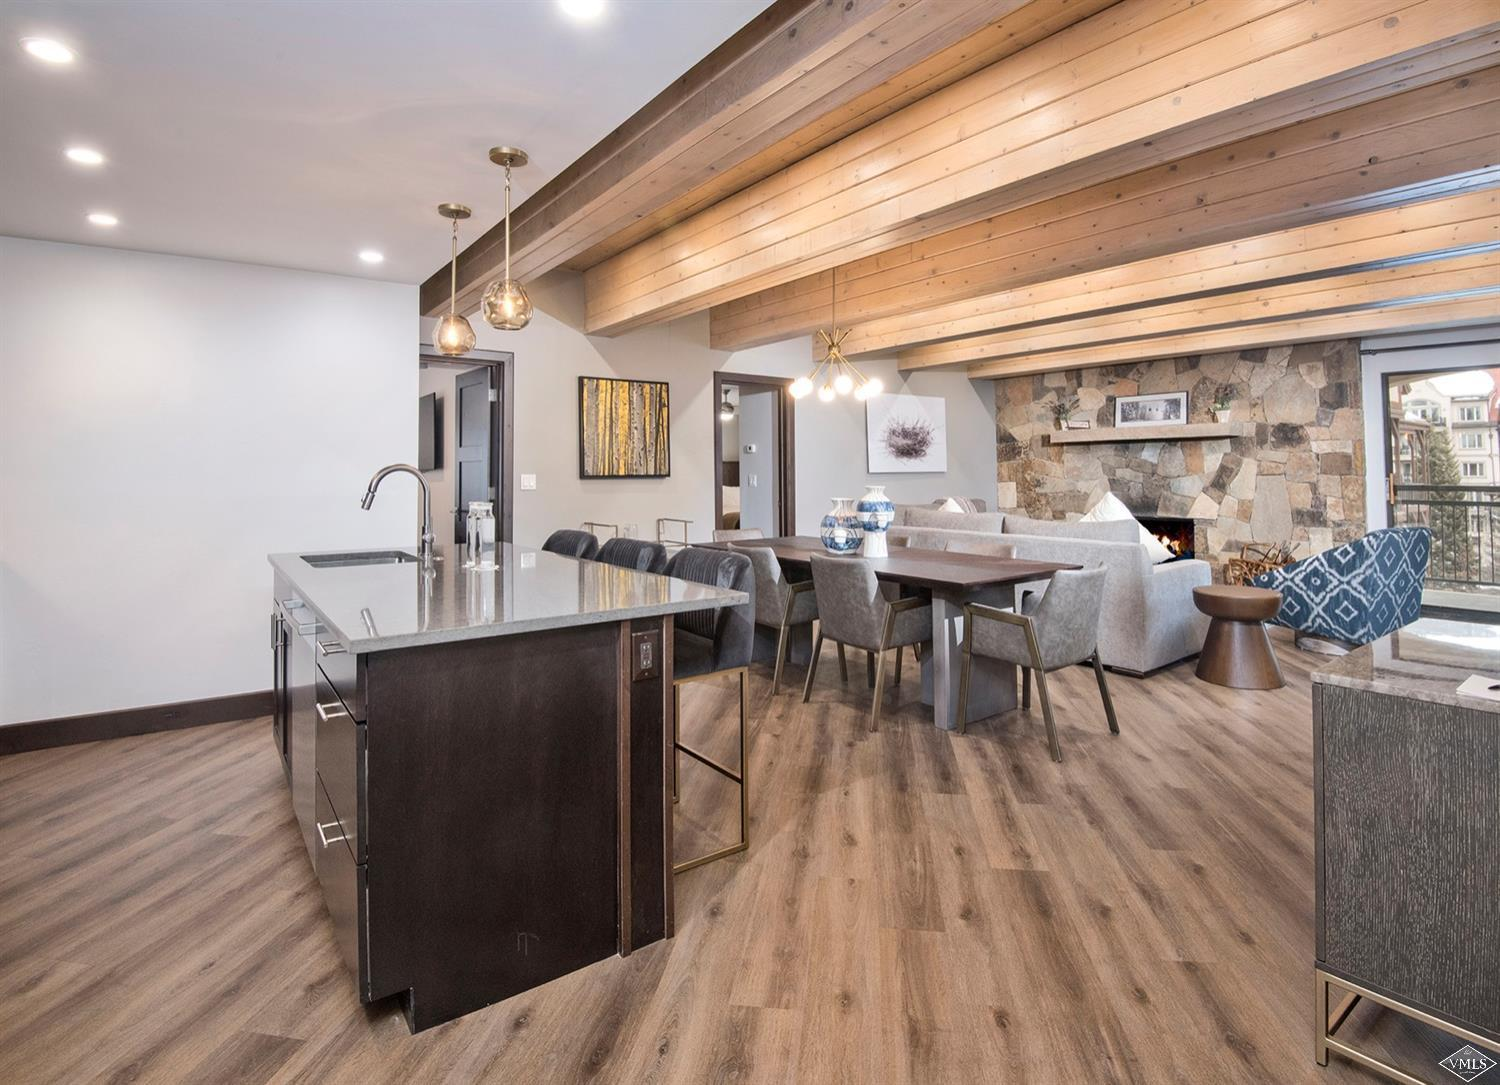 Enjoy all the amenities the Lionshead Marriott has to offer in this beautifully remodeled, fully furnished condo. Great location with a large deck looking towards the Lionshead gondola, completely turn-key and move in ready!